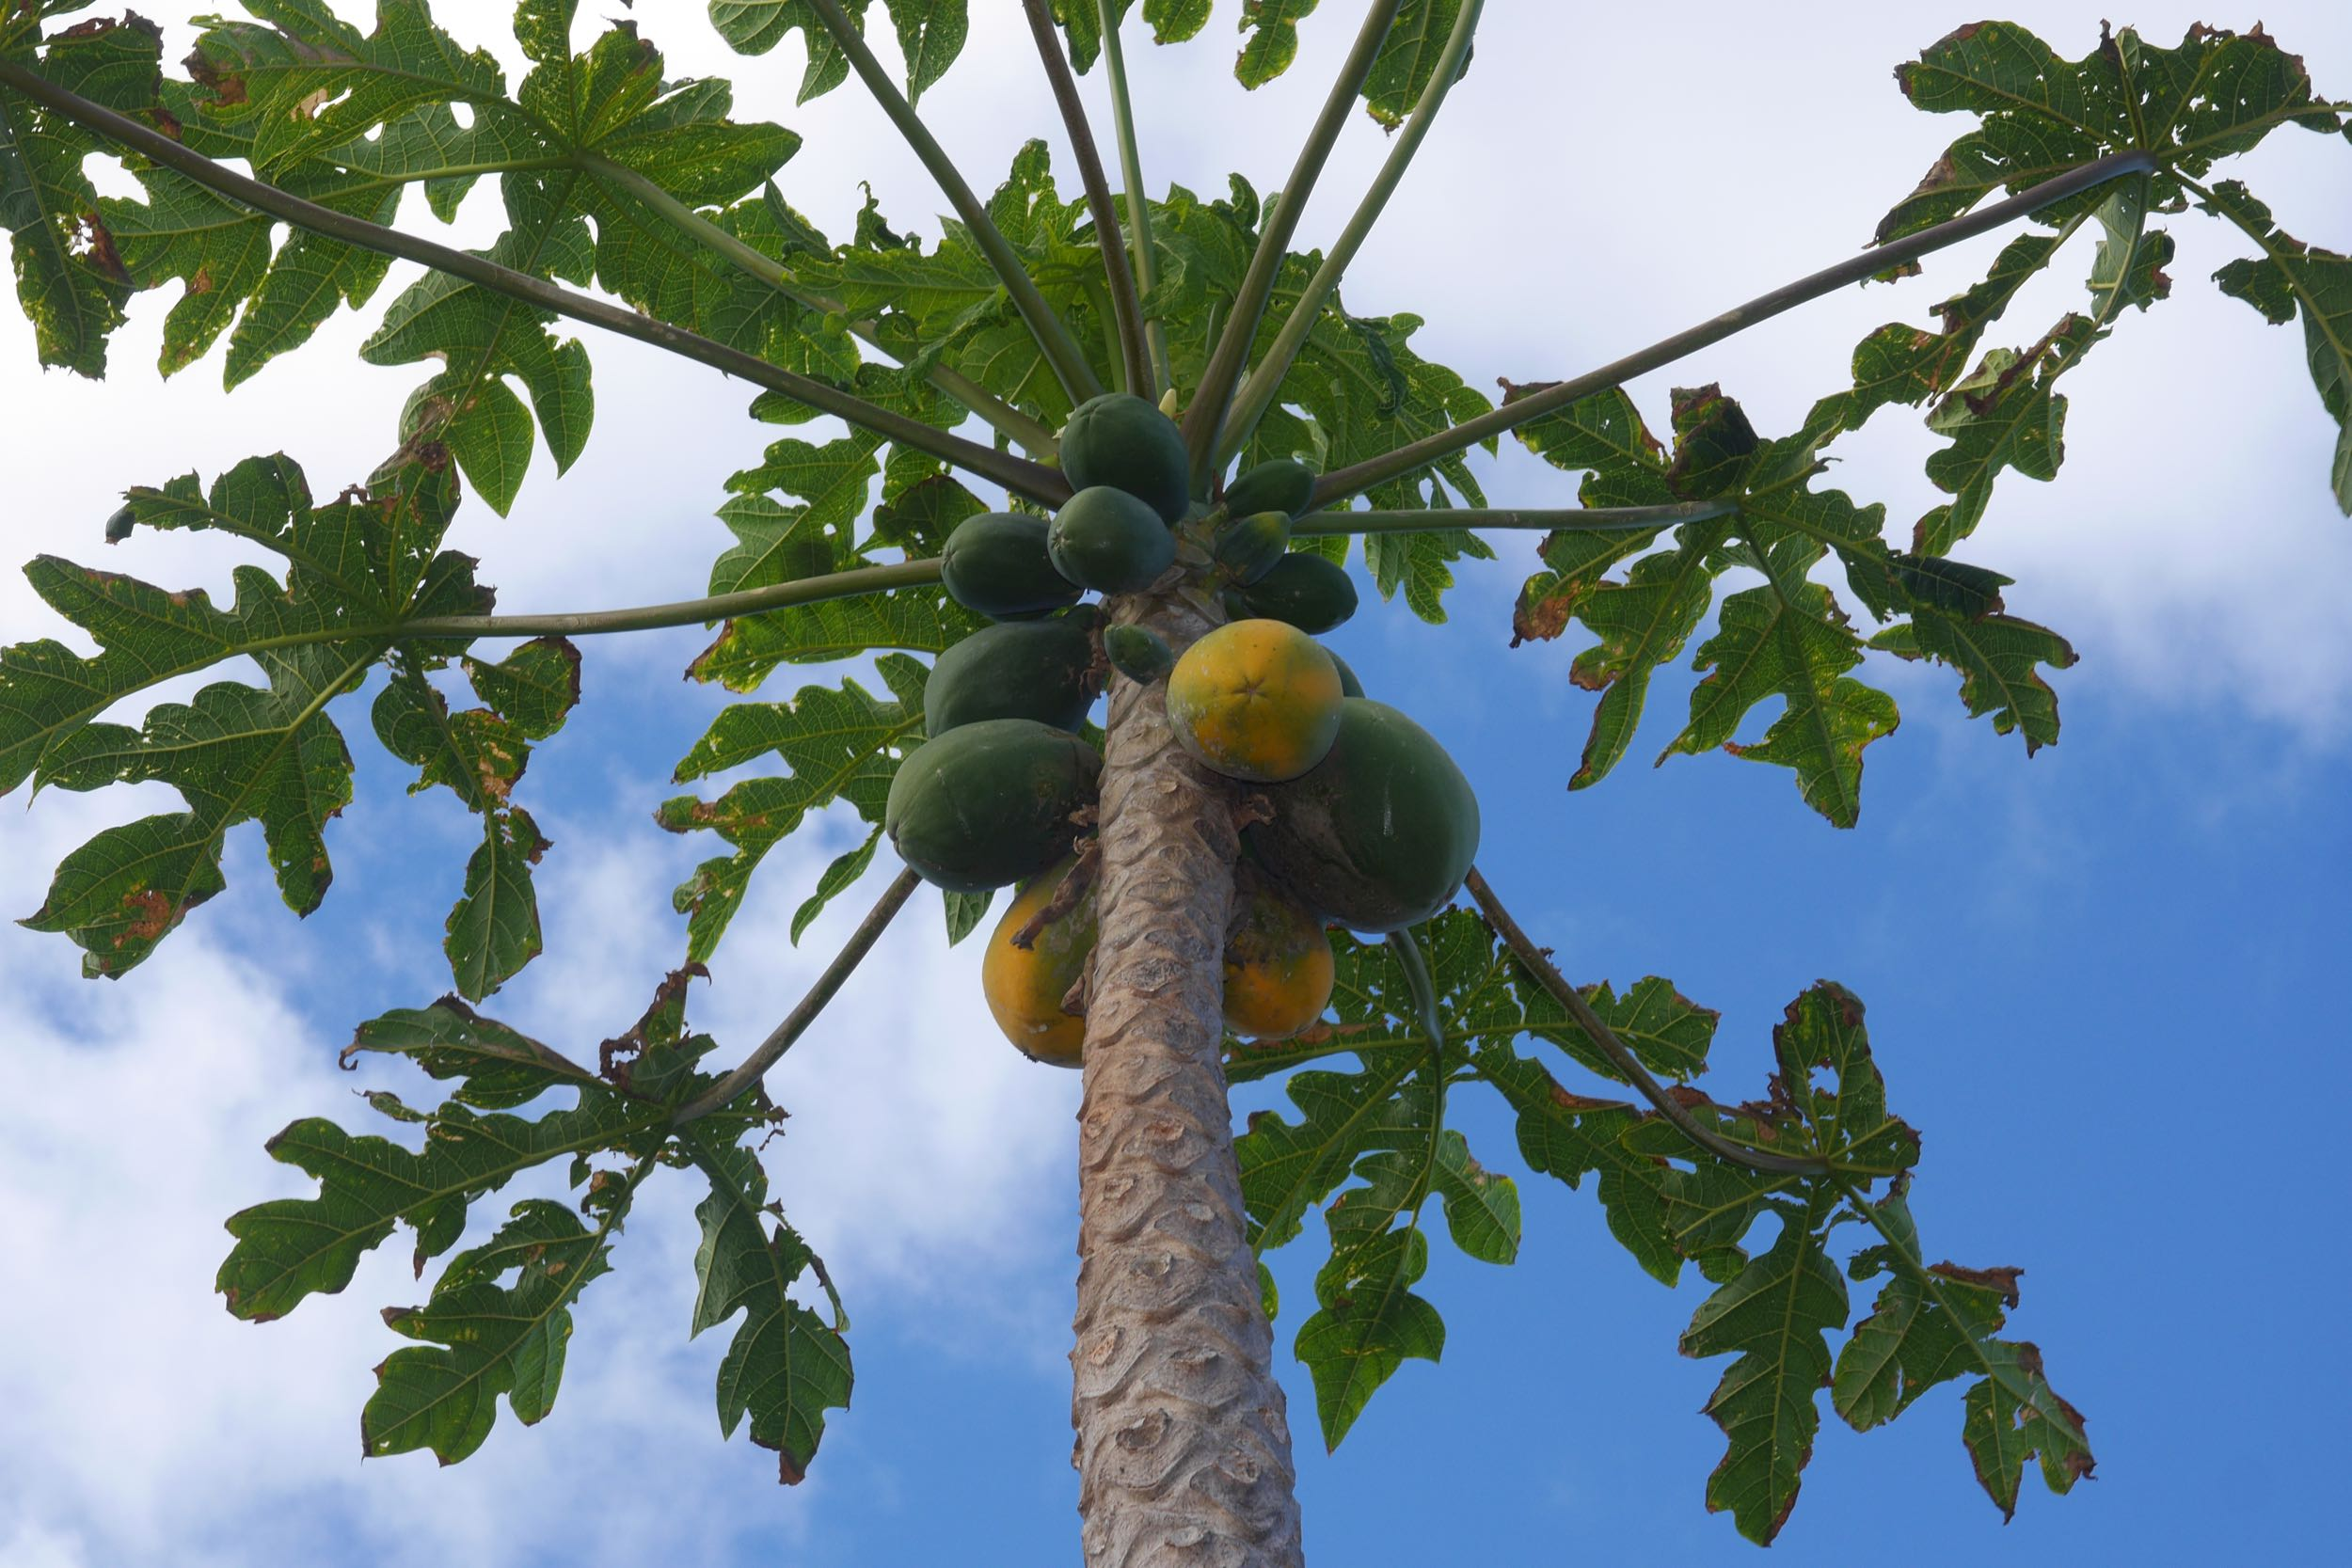 Papaya in our farm